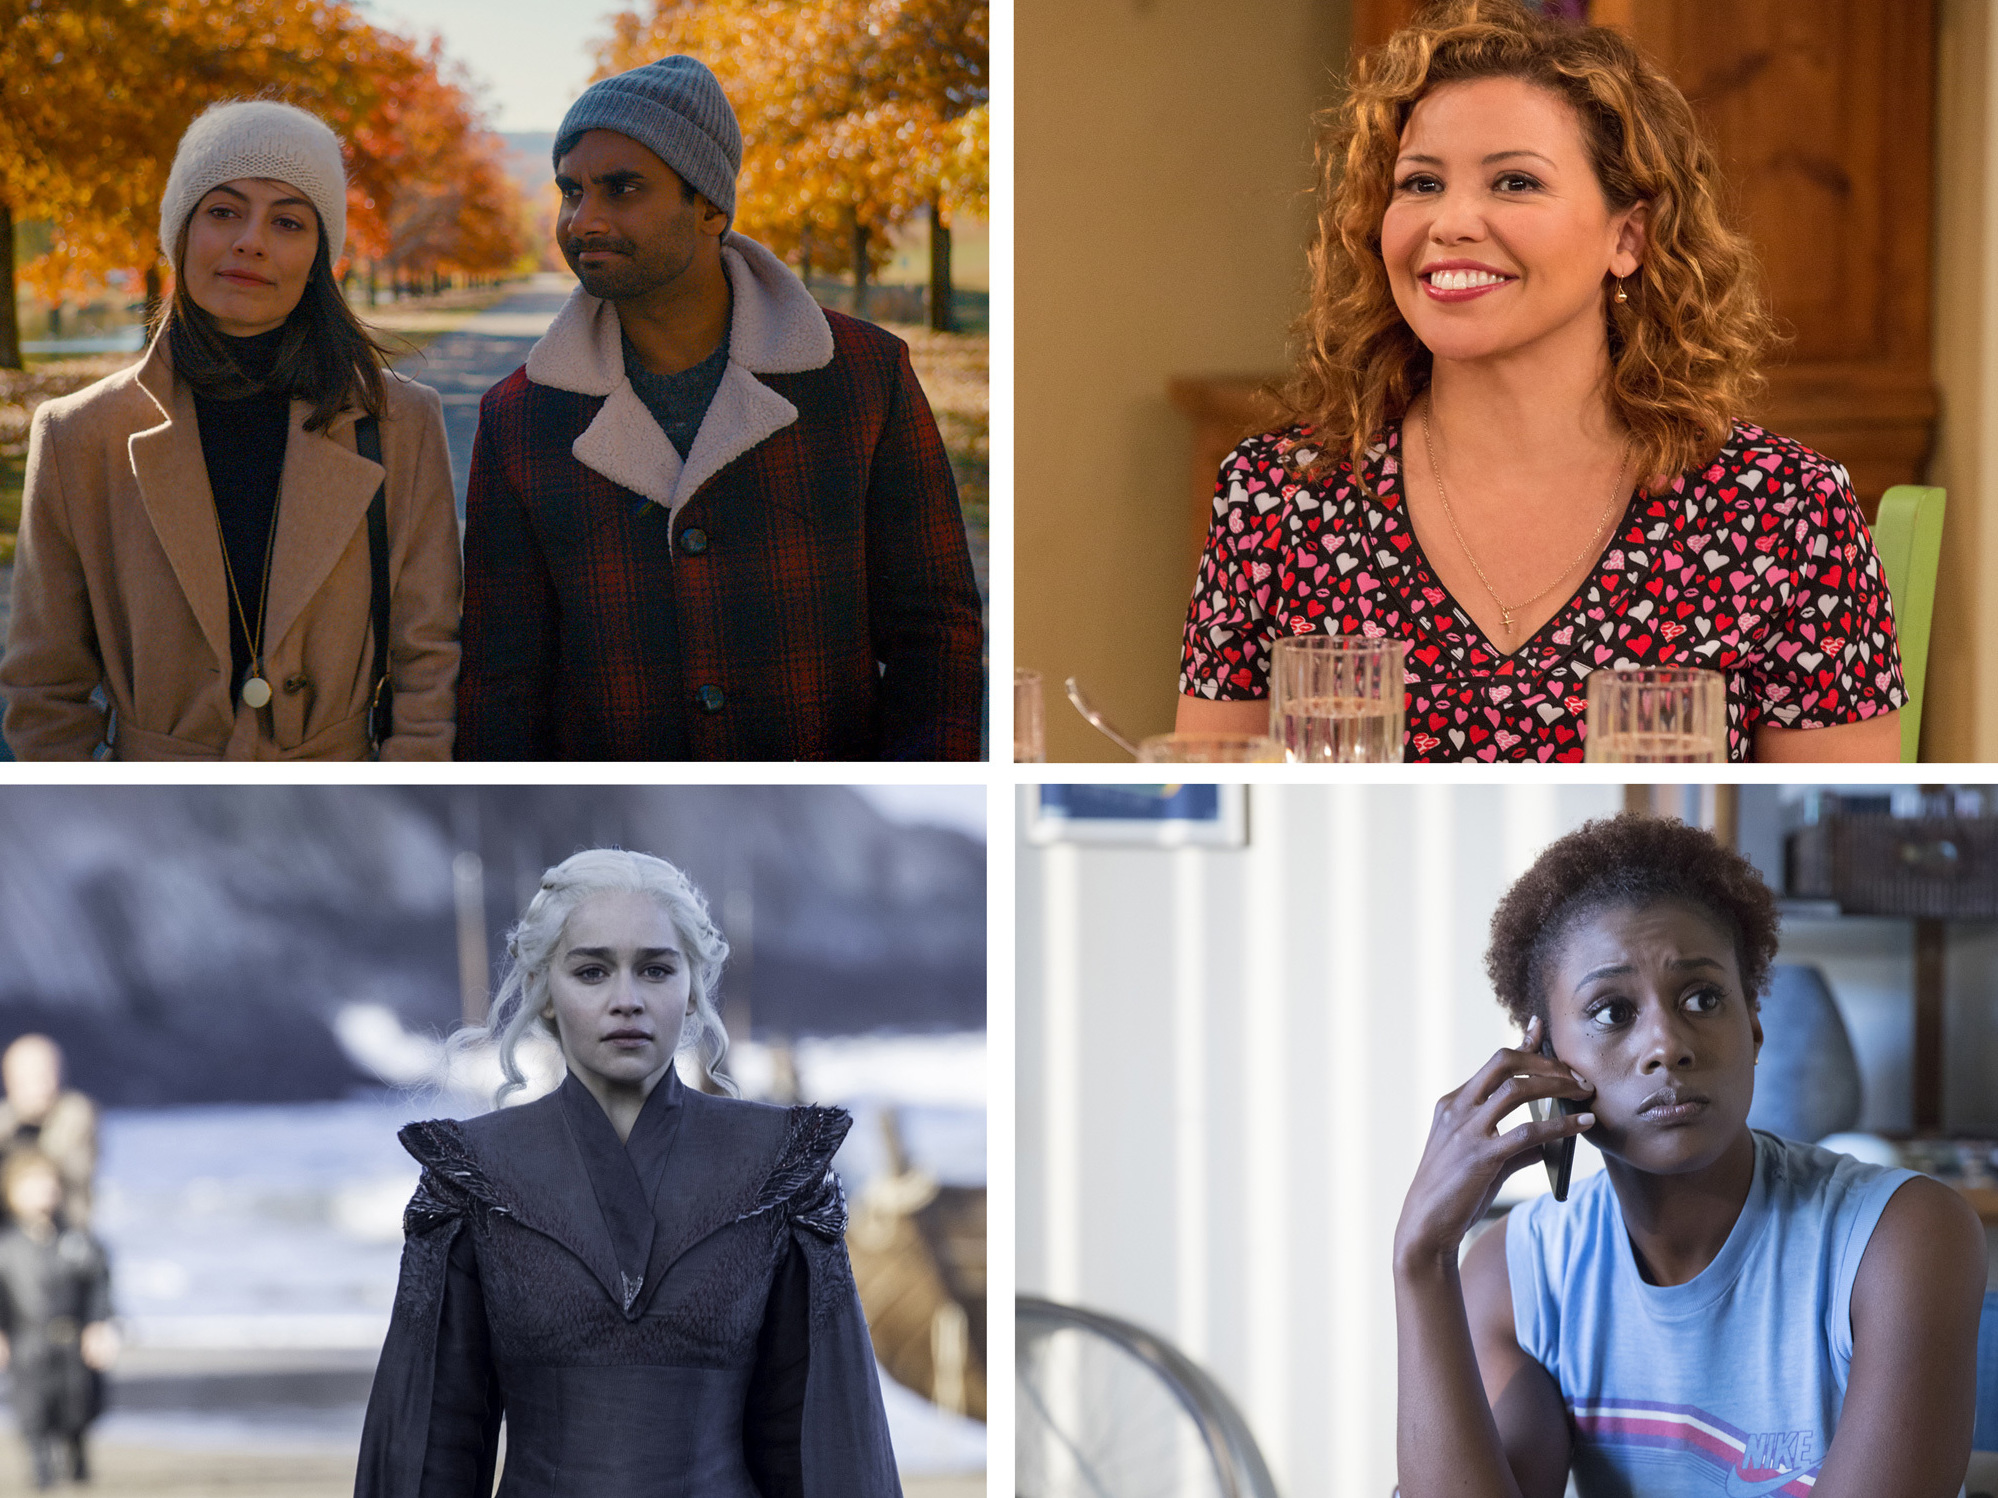 Big Little Lies, Master of None, One Day at a Time, The Handmaid's Tale, Game of Thrones and Insecure all made NPR's top list.